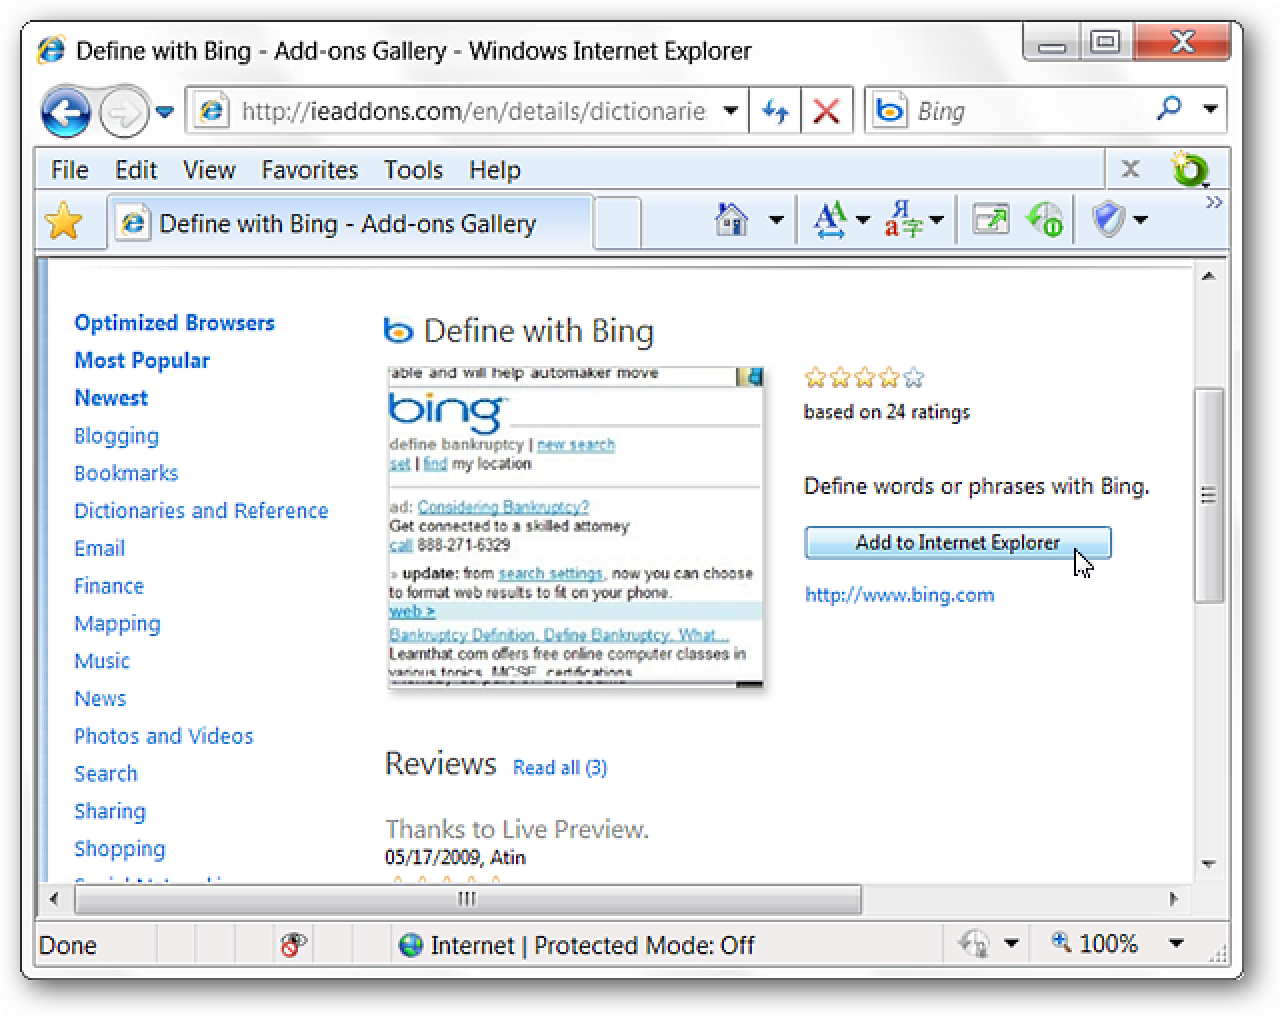 view word definitions in ie 8 with the define with bing accelerator